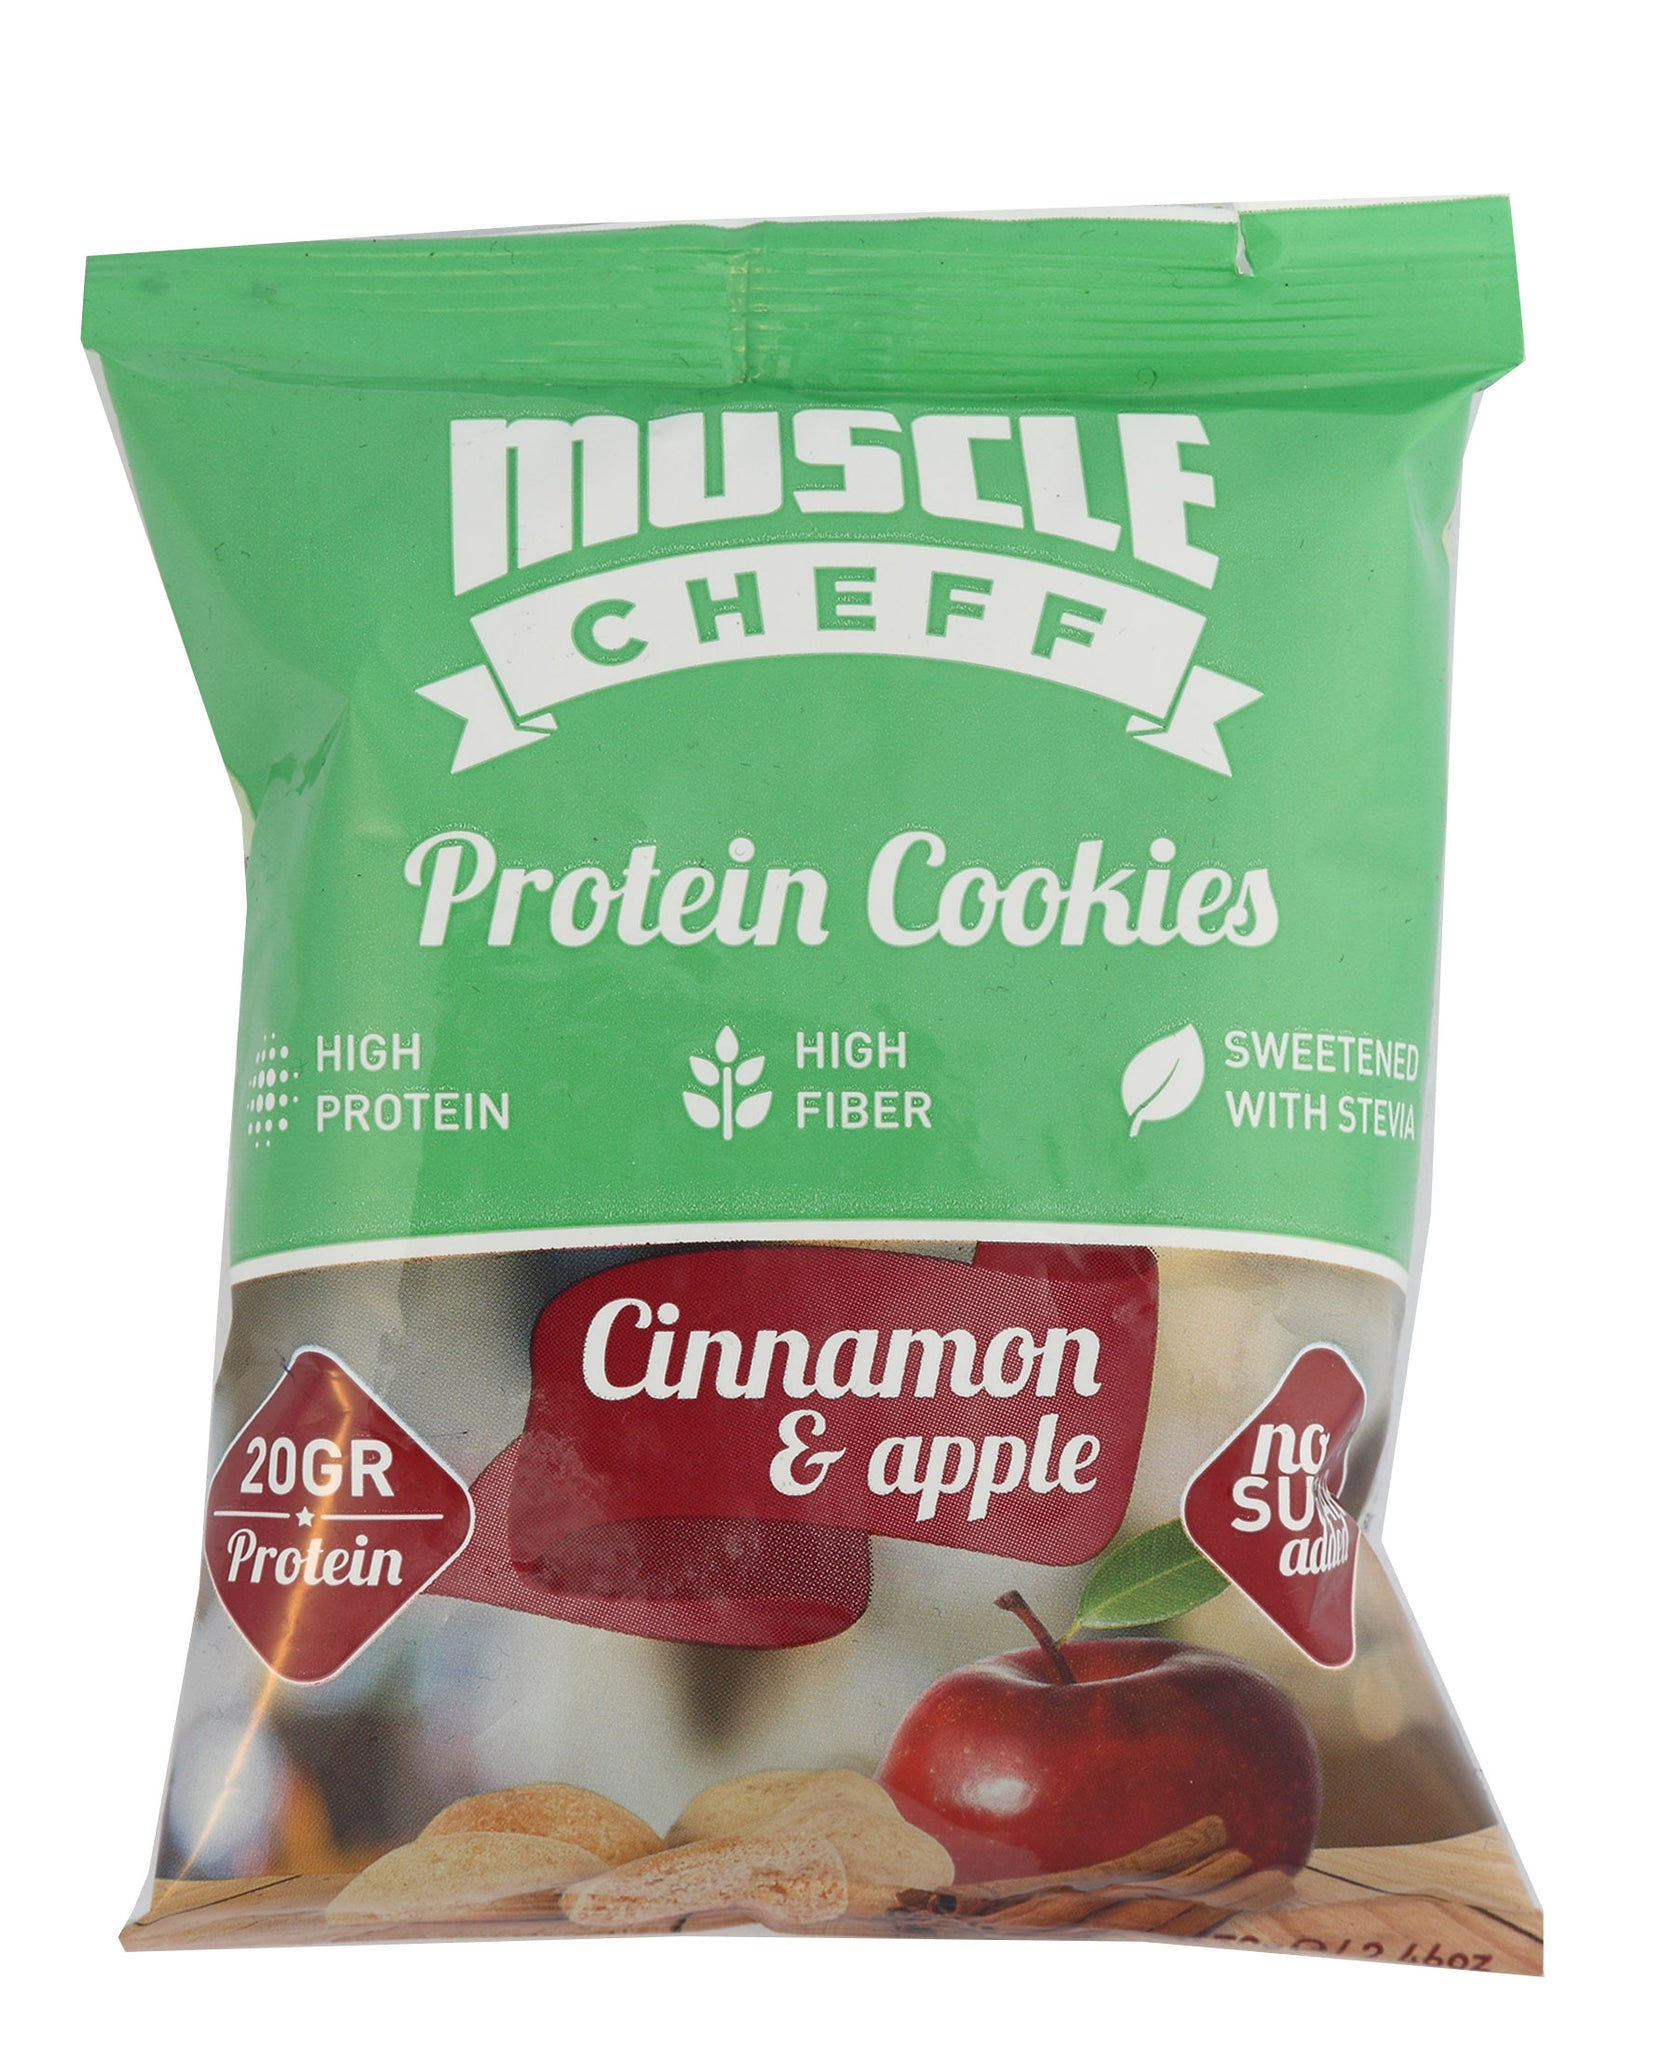 Cinnamon & Apple Protein Cookies - Green